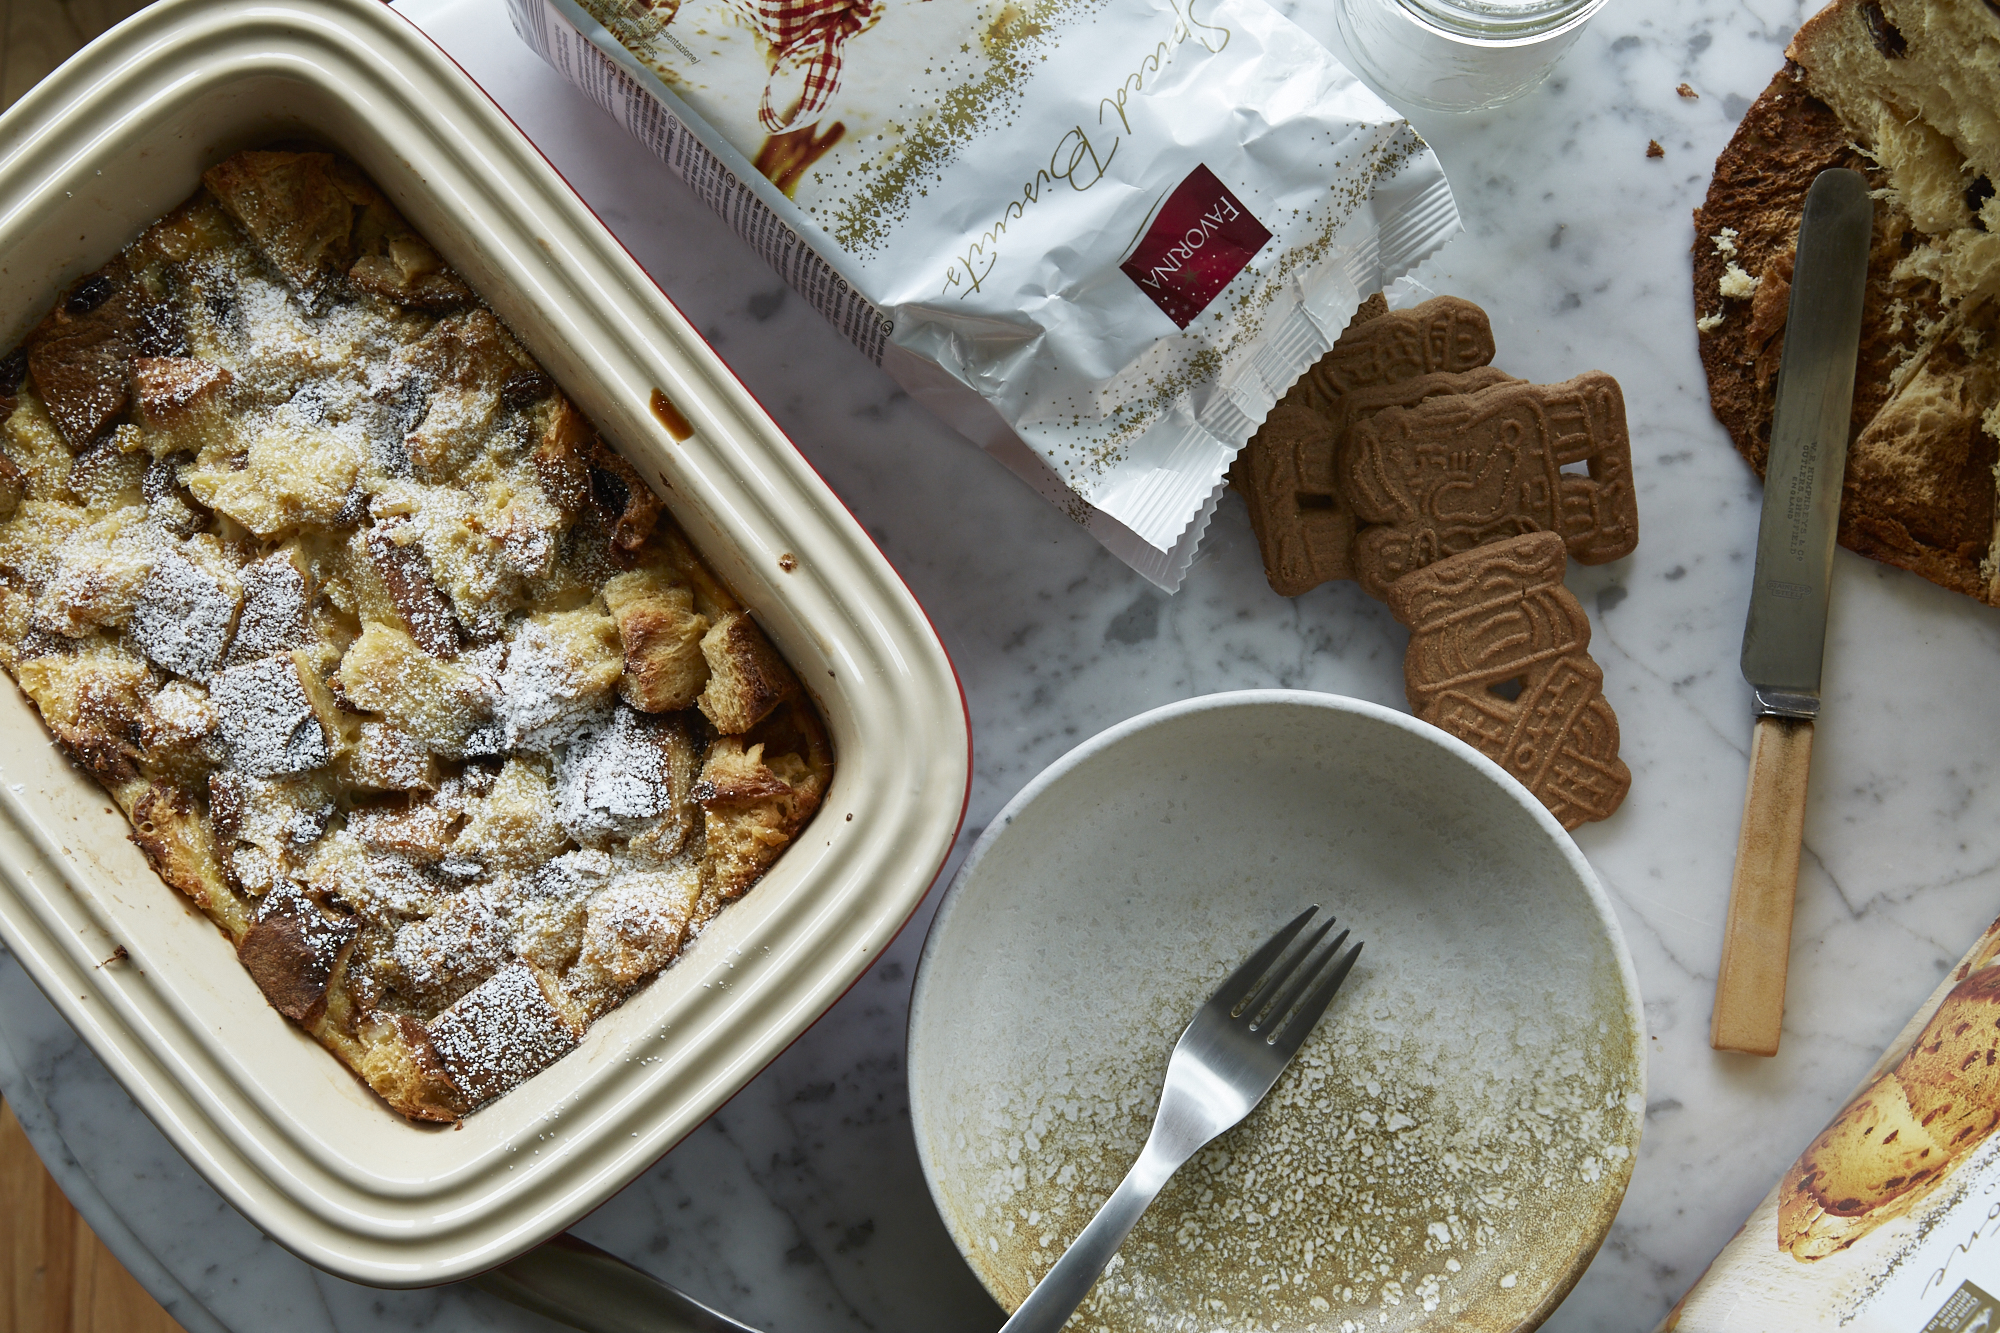 lidl-bread-pudding-lidl-panettone-bread-pudding0212